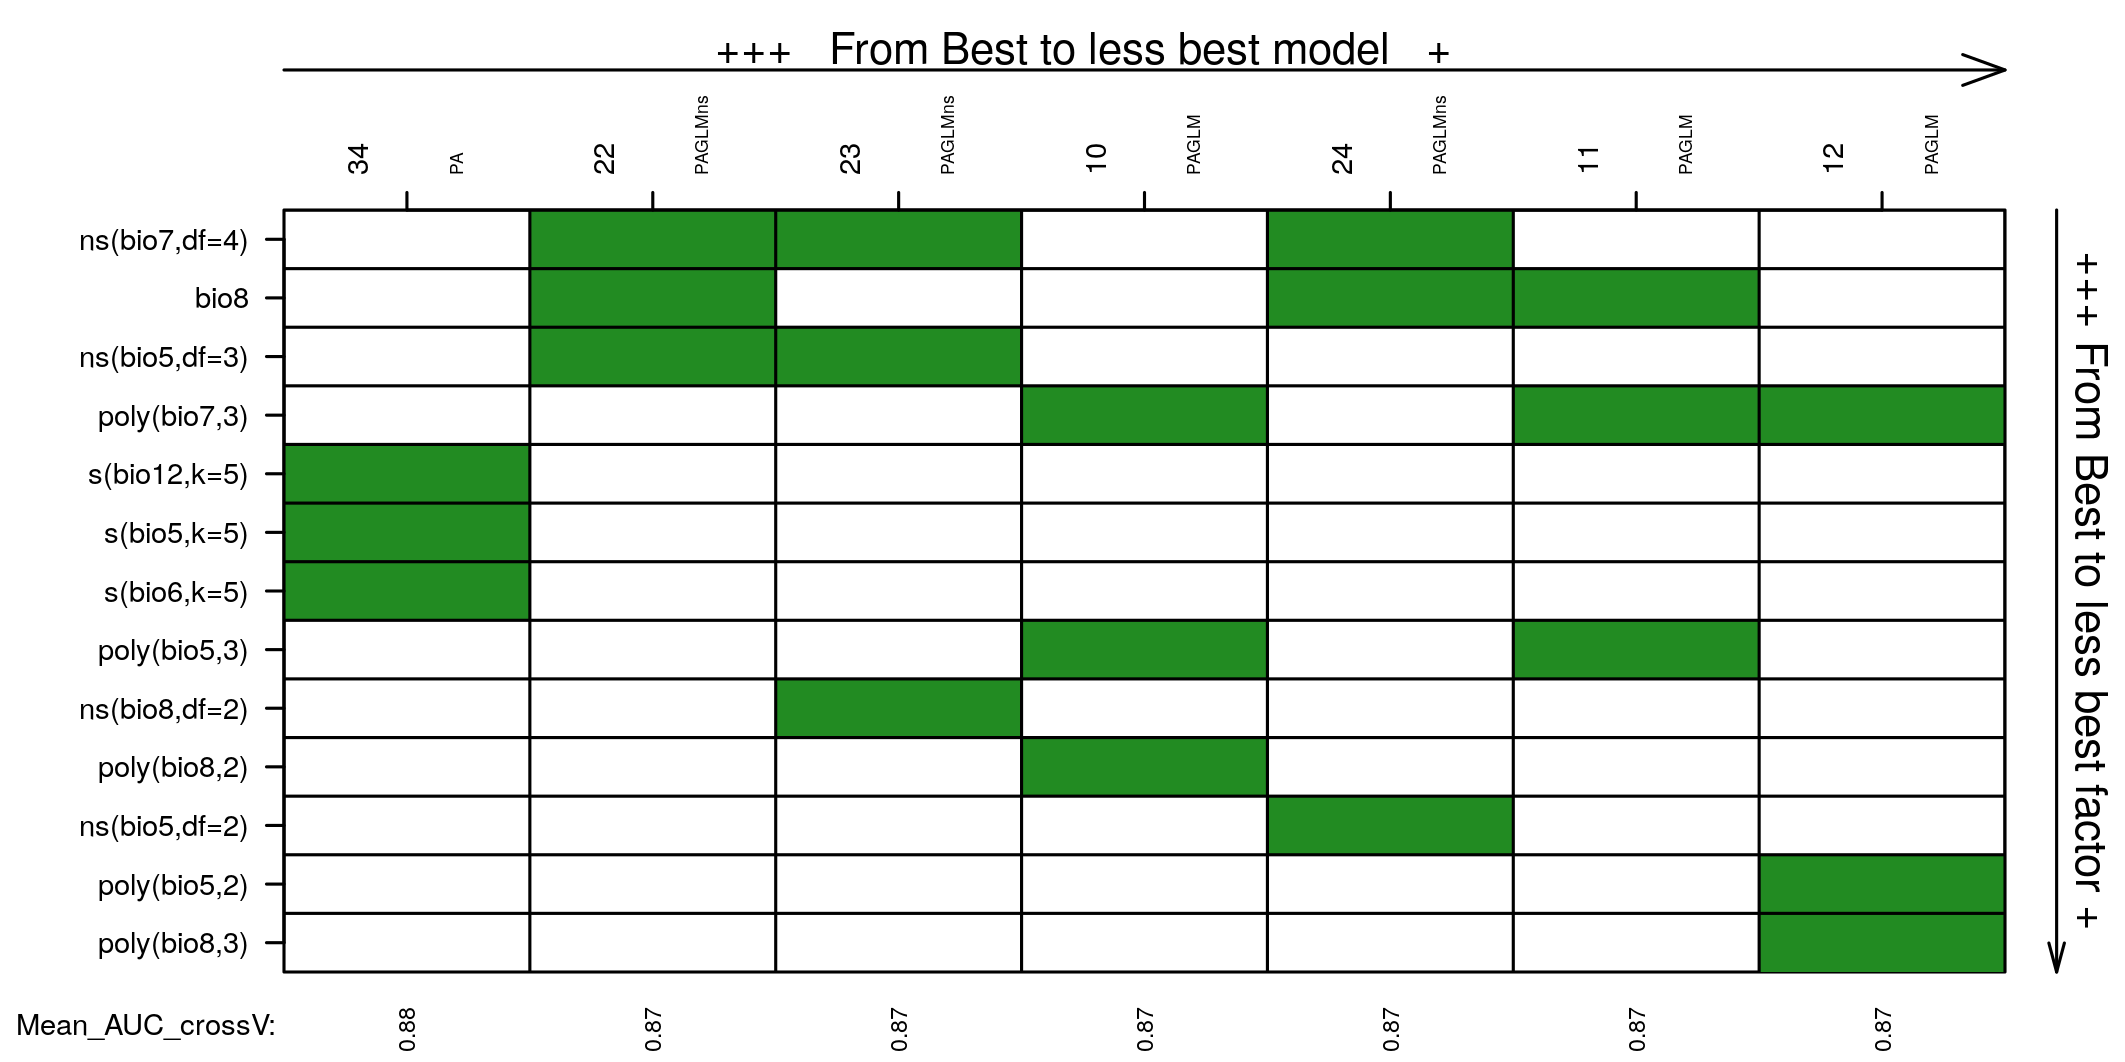 Models and covariates in models not statistically different from the best one. Covariates are ordered based on occurrence in the models selected.